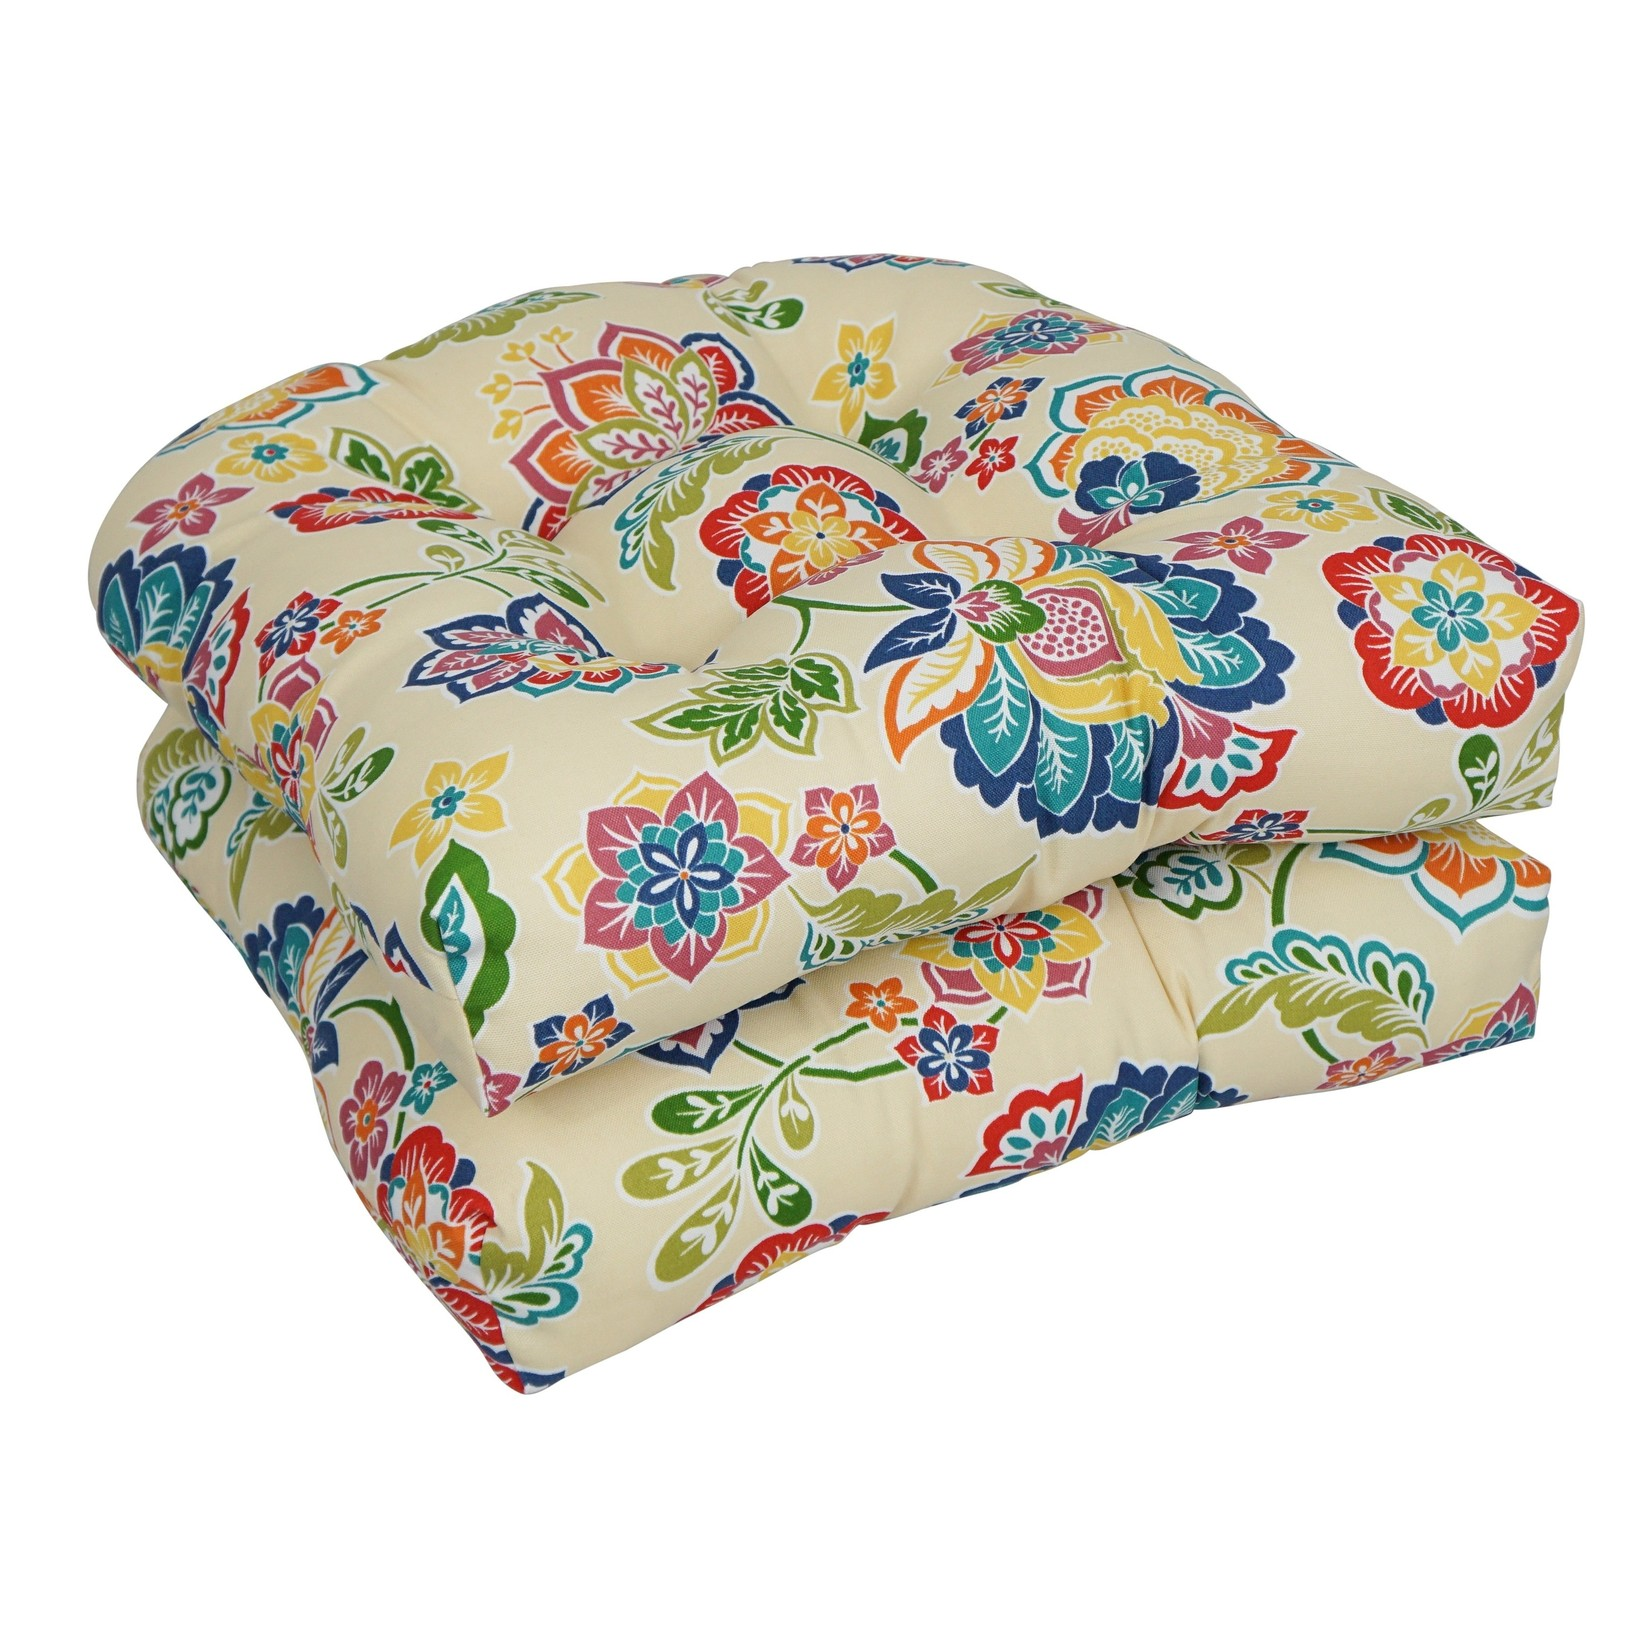 *Tufted Dining Chair Indoor/Outdoor Seat Cushion - Only includes one seat cushion